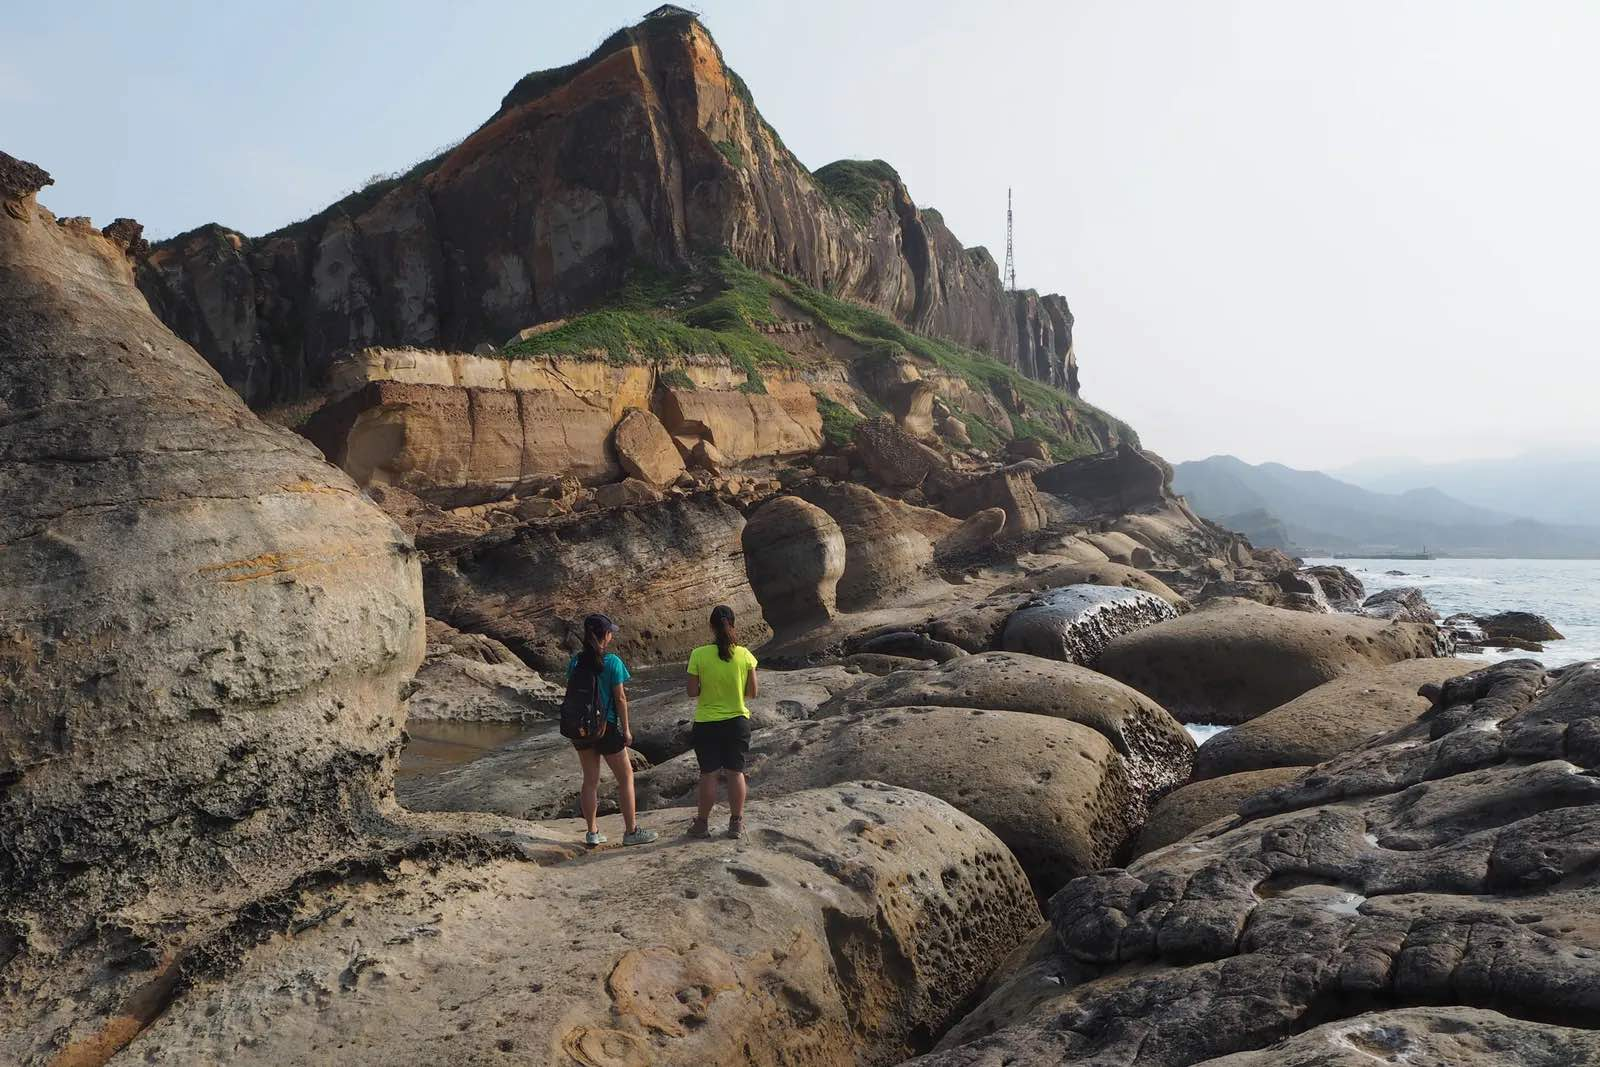 The sandstone formation in Taiwan, where giant worms once hunted.